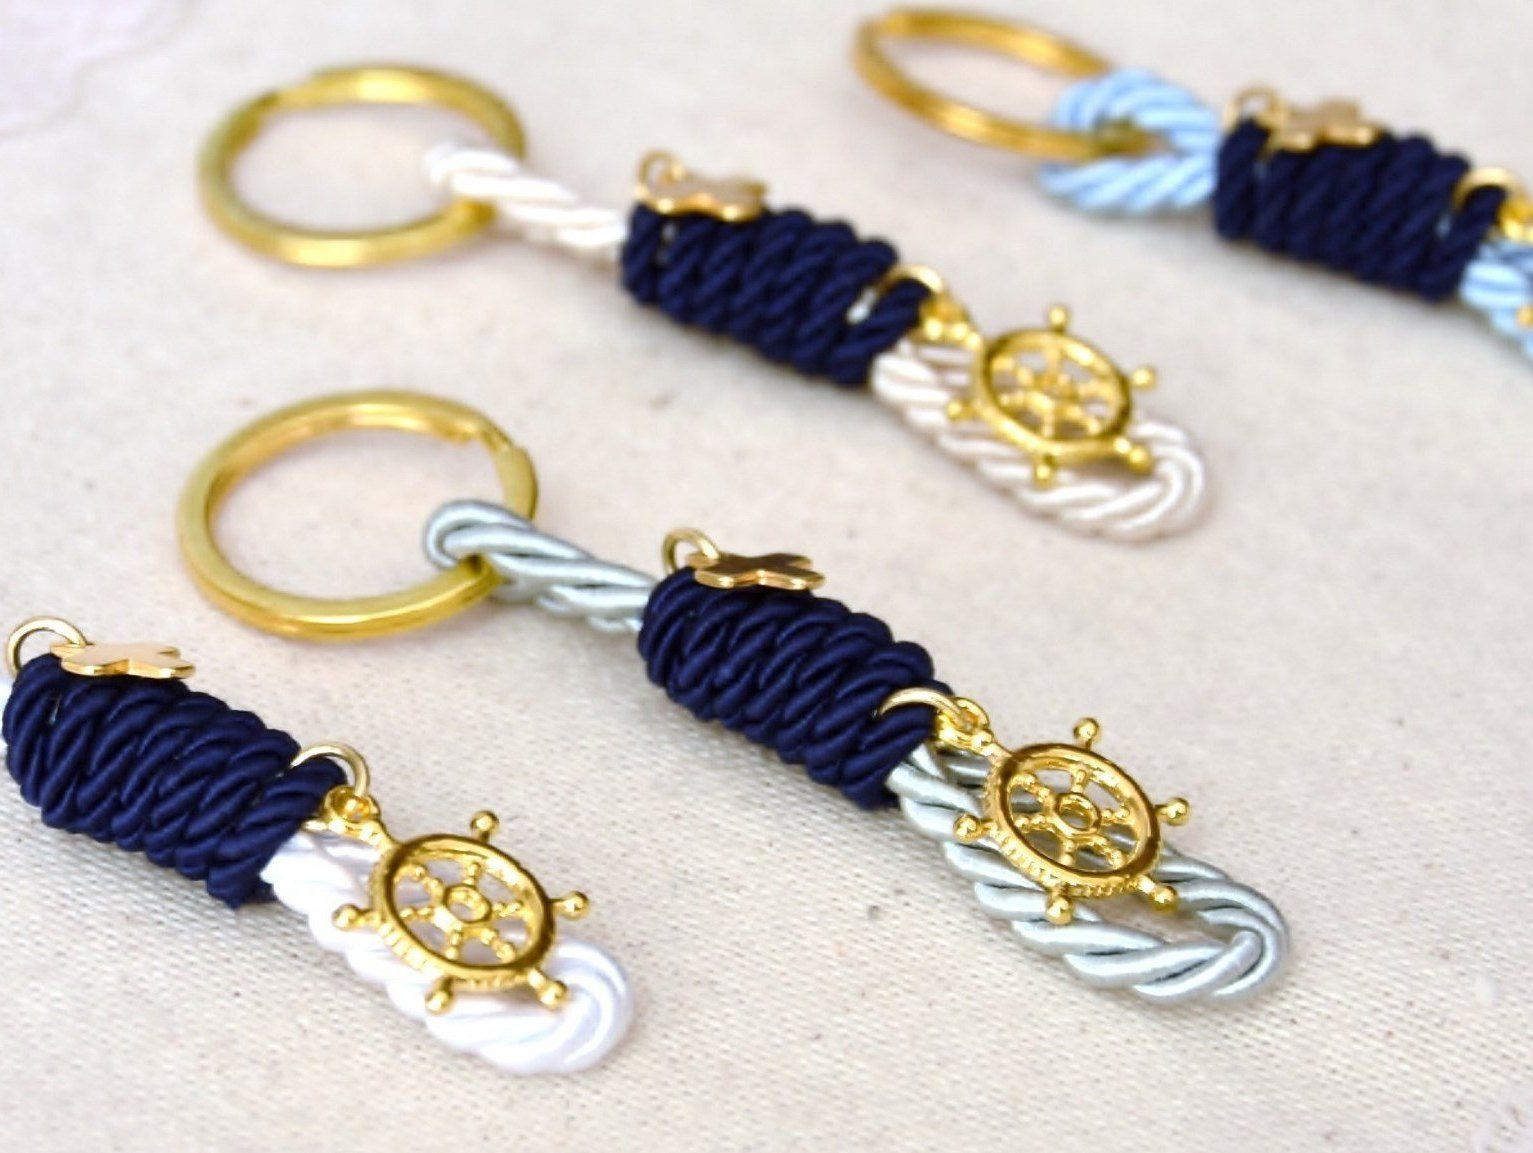 Navy blue nautical baptism favors keychains for boys with